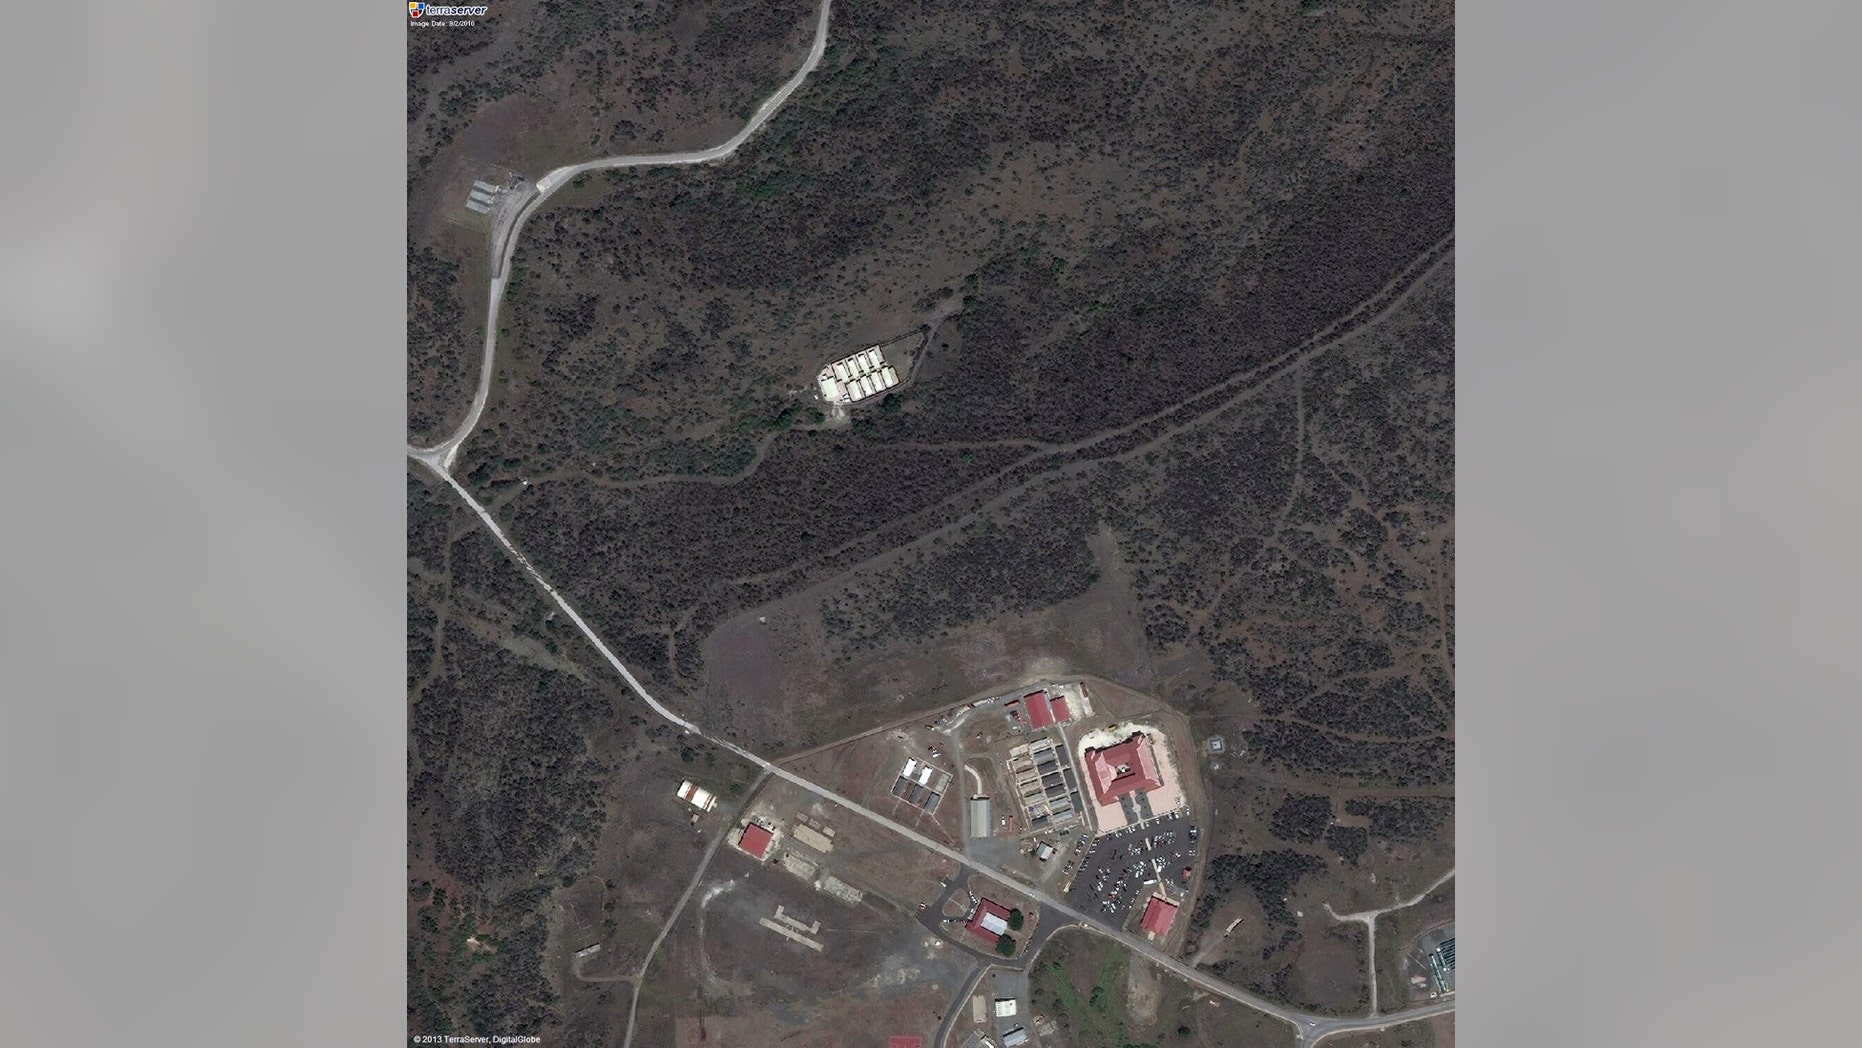 This satellite image provided by TerraServer.com and DigitalGlobe shows an image captured on Sept. 2, 2010, shows a portion of Naval Station Guantanamo Bay, Cuba, including the secret facility known as Penny Lane, upper middle in white. In the early years after 9/11, the CIA turned a handful of prisoners at the secret facility into double agents and released them. Current and former U.S. officials tell The Associated Press that the program helped kill terrorists. The program was carried out in the secret facility, built a few hundred yards from the administrative offices of the prison in Guantanamo Bay, bottom of image. The eight small cottages were hidden behind a ridge covered in thick scrub and cactus. (AP Photo/TerraServer.com and DigitalGlobe)